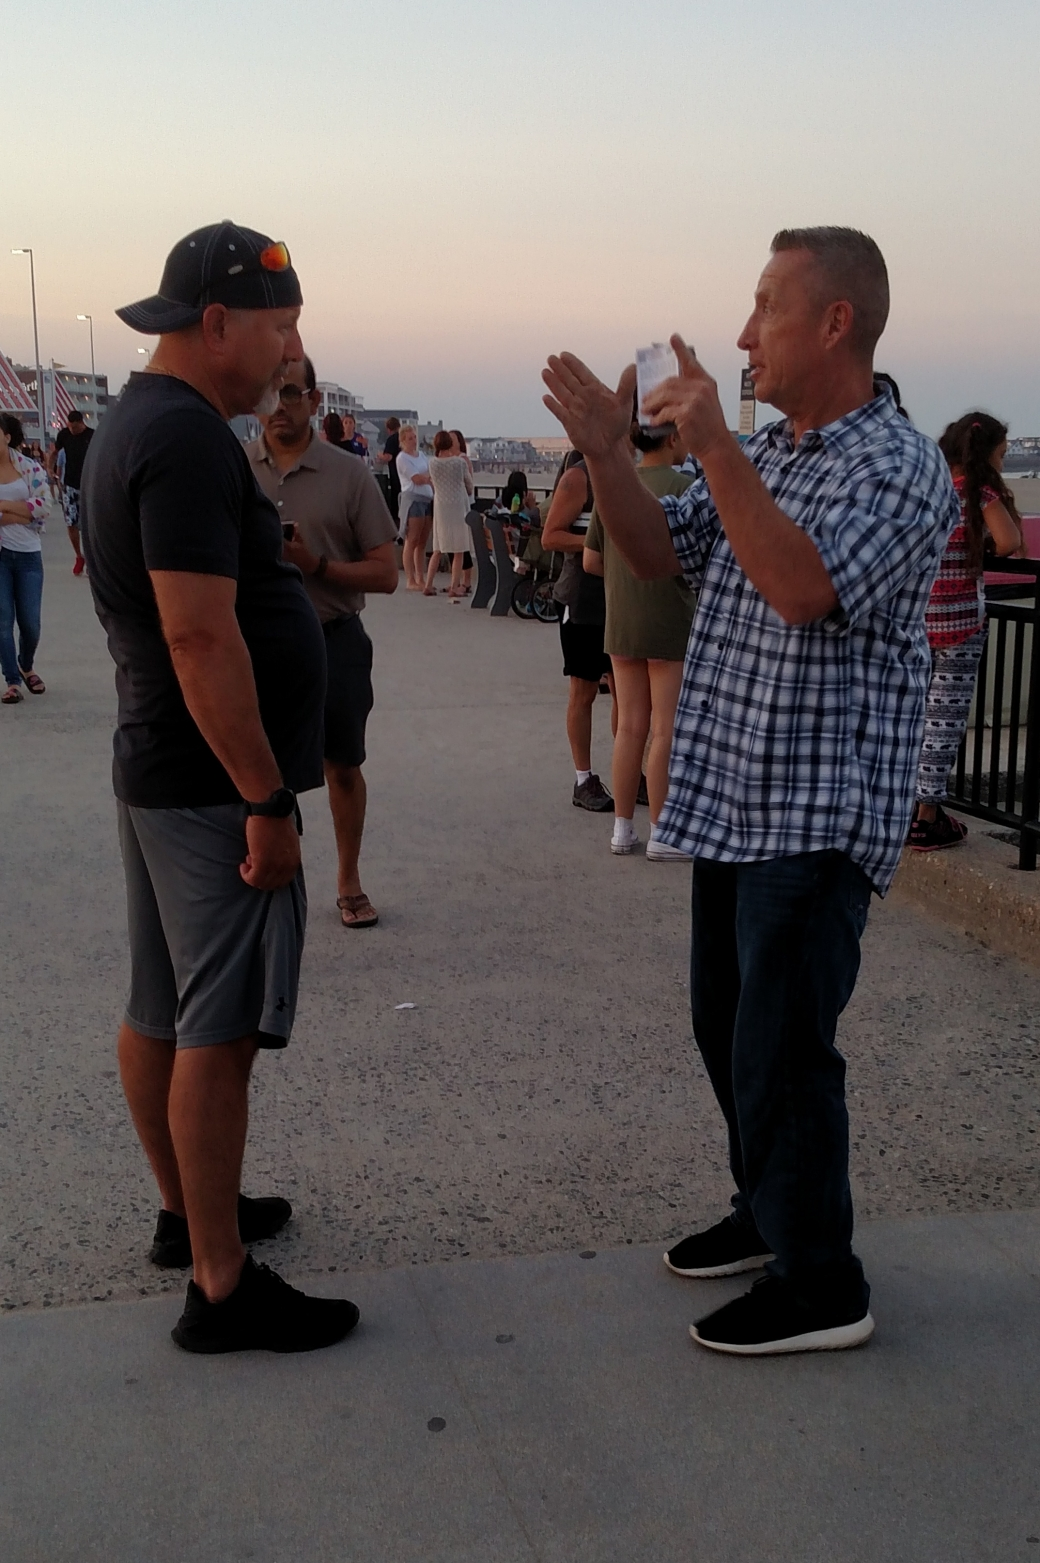 """Paul (right) is a faithful volunteer and gifted Evangelist. Paul skillfully diffused this heckler who came by to make fun of the painting. Paul overcame """"evil with good"""" (Romans 12:21) and through his kindness, got into a fruitful conversation with this man. Praise God!"""